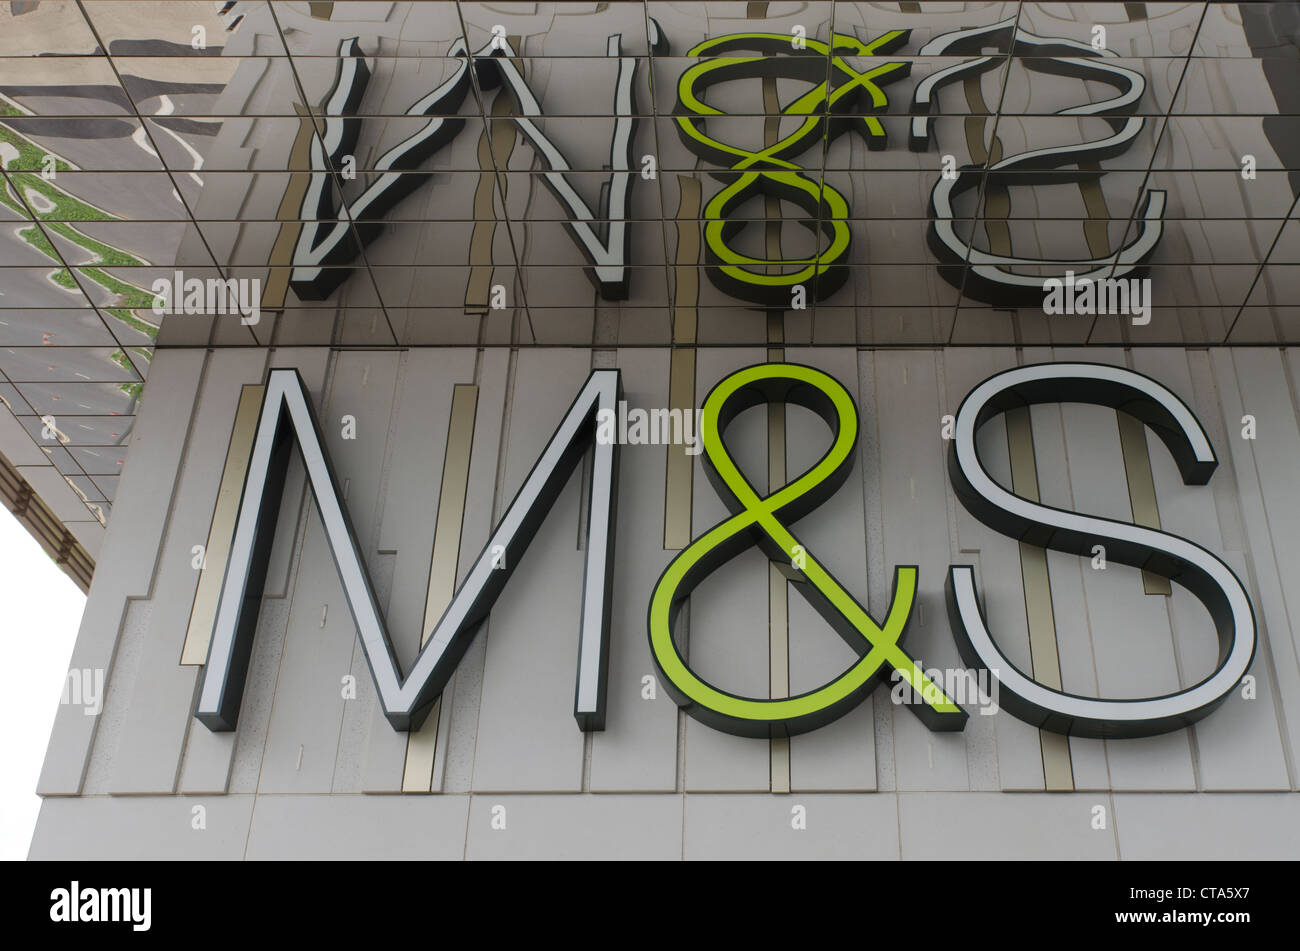 M&S logo sign at Westfield shopping centre Stratford City London - Stock Image